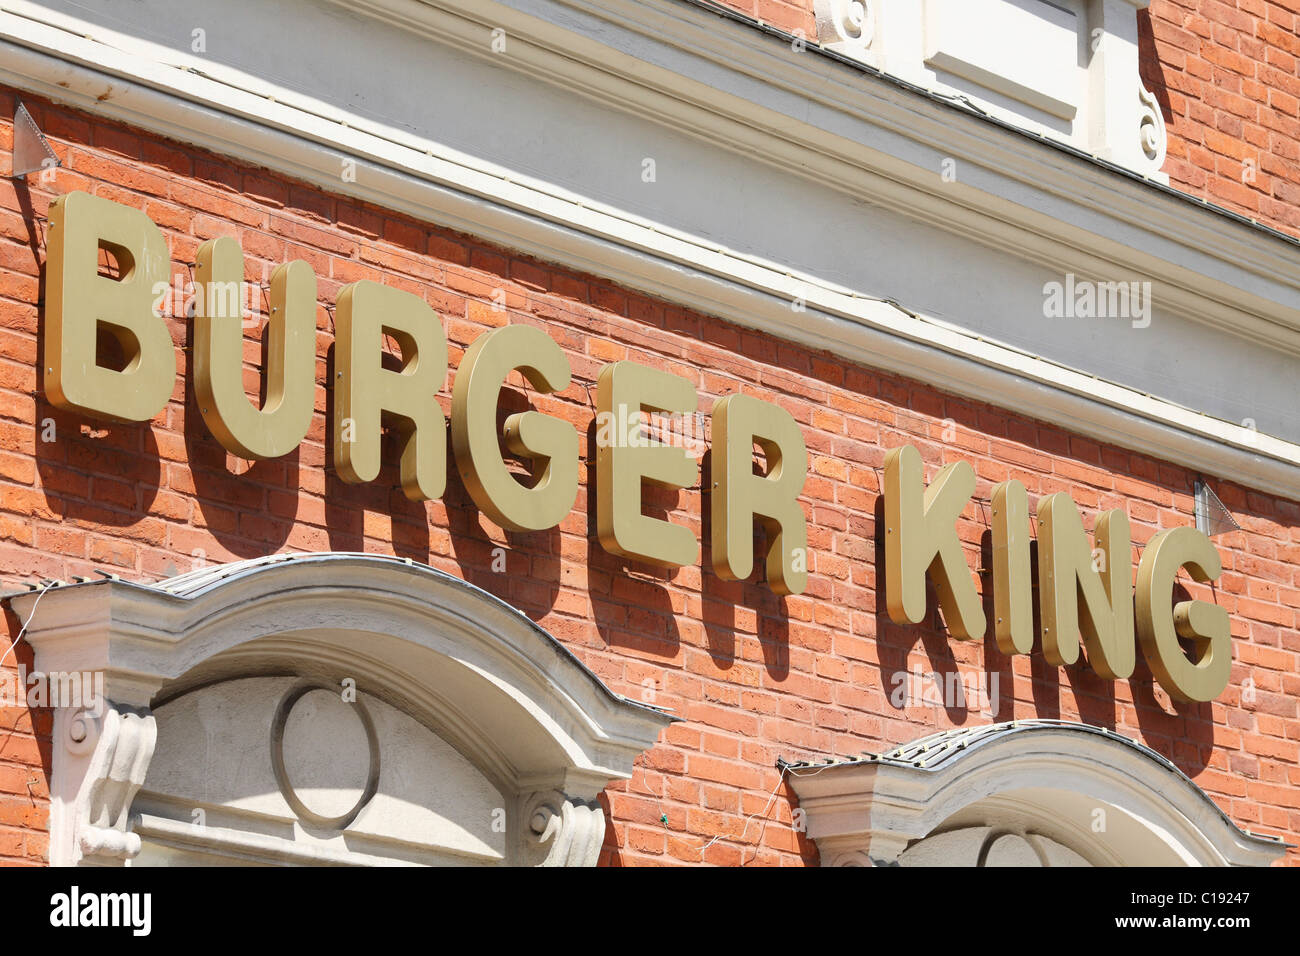 munich germany german burger king stock photos munich germany german burger king stock images. Black Bedroom Furniture Sets. Home Design Ideas